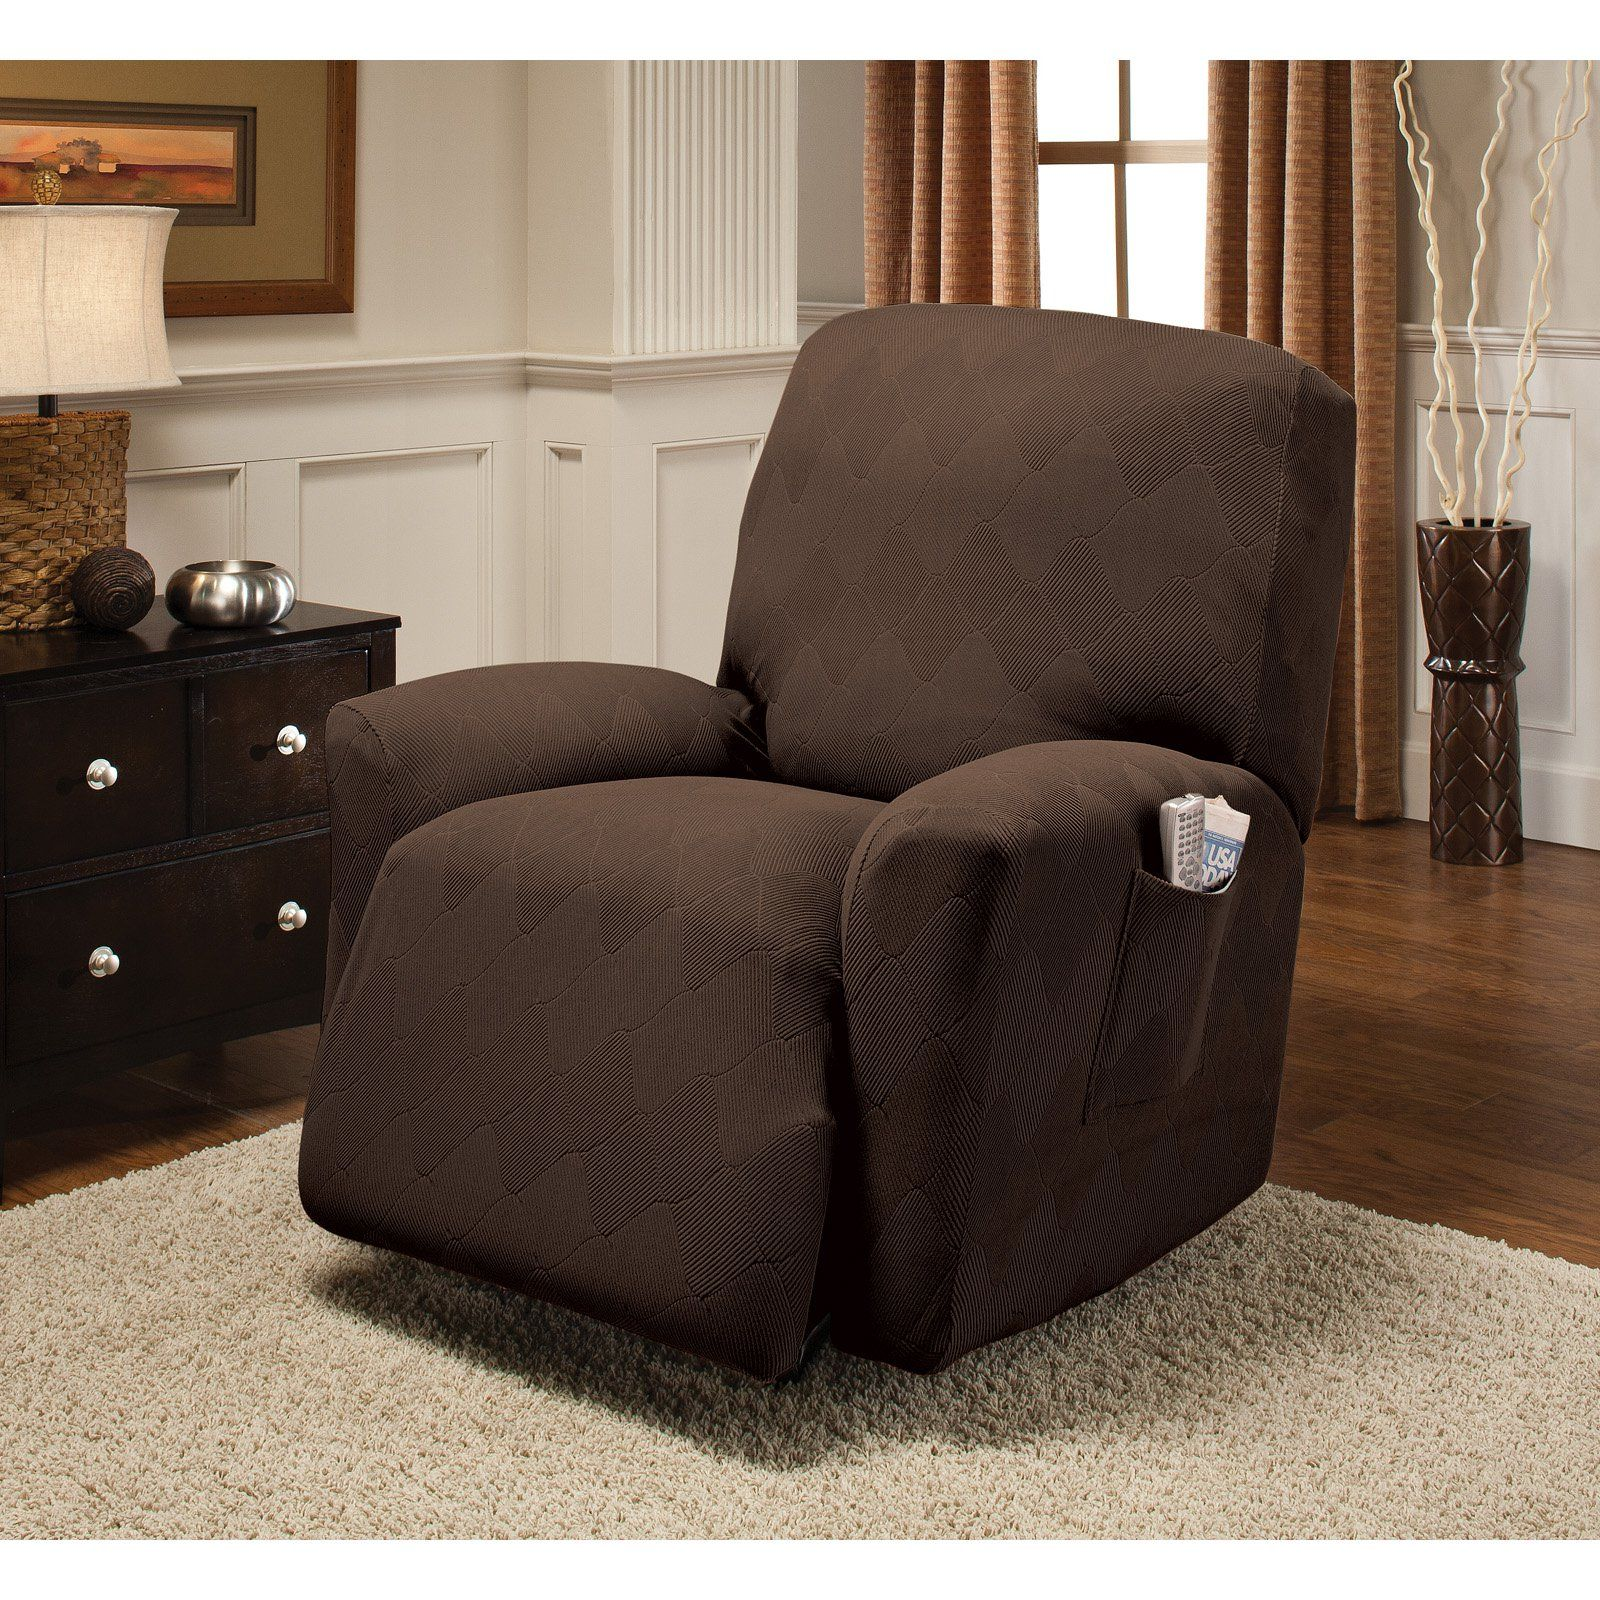 for slipcovers fit stretch sure chocolate recliner surefitstretchpiquelargereclinerslipcover options recliners hayneedle pique large slipcover cfm product